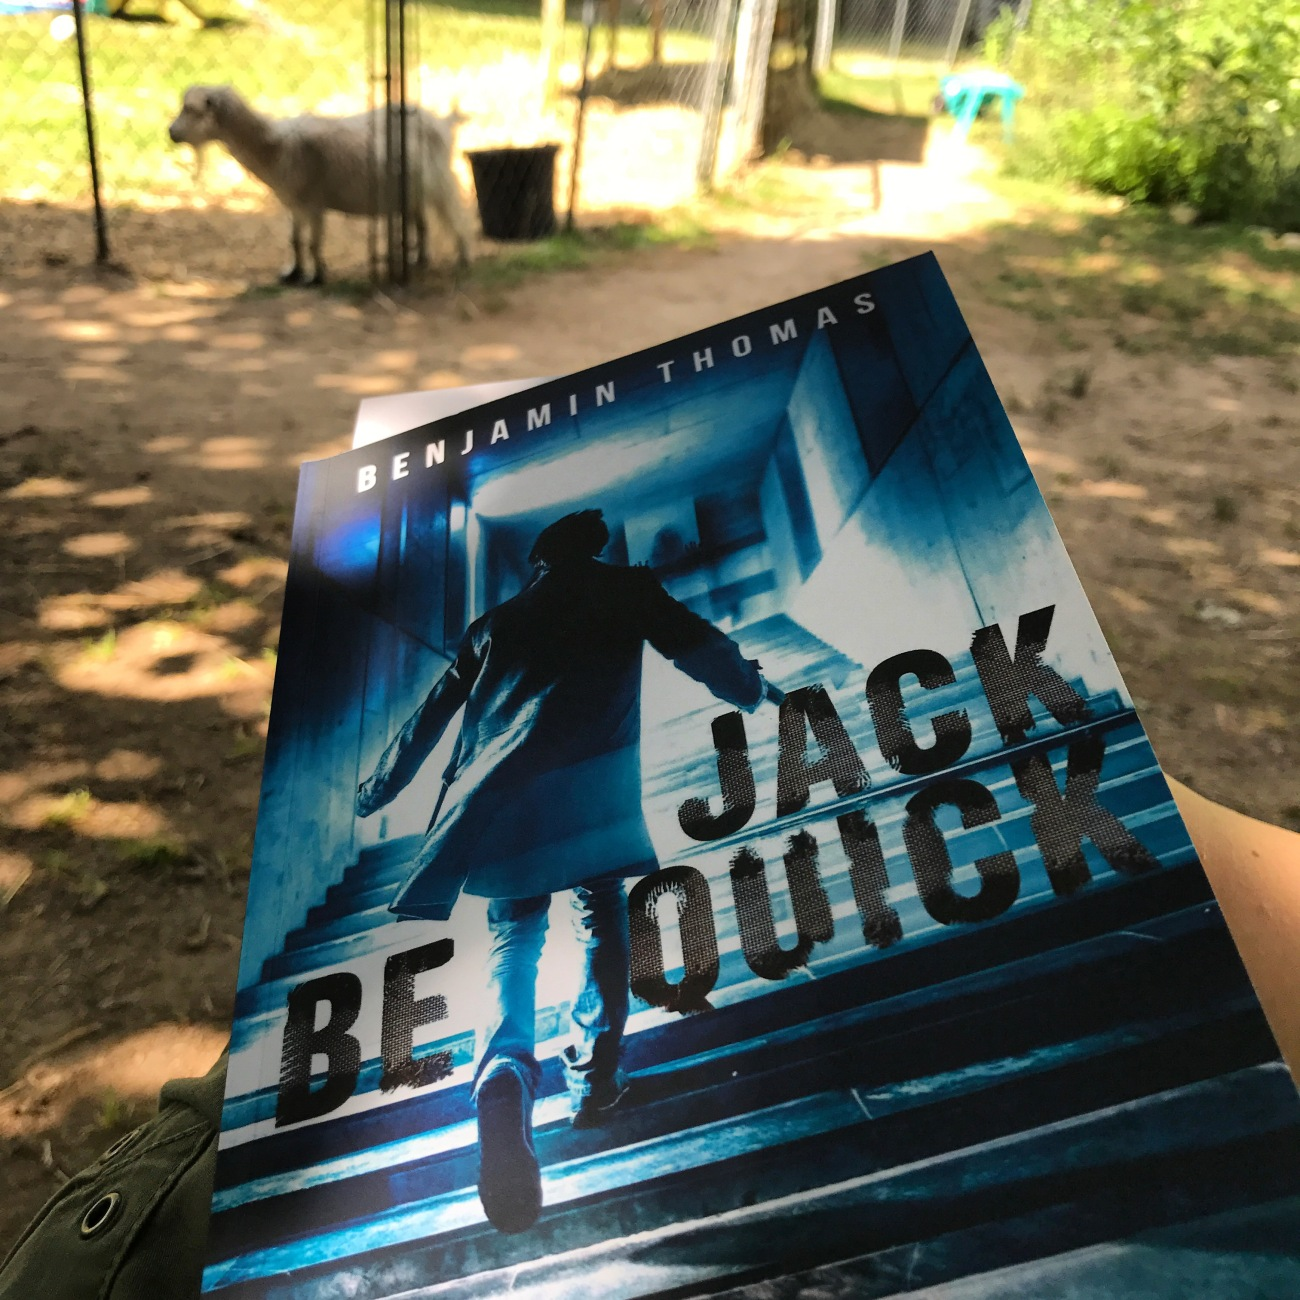 Jack Be Quick by Benjamin Thomas with Goats (WildmooBooks.com)